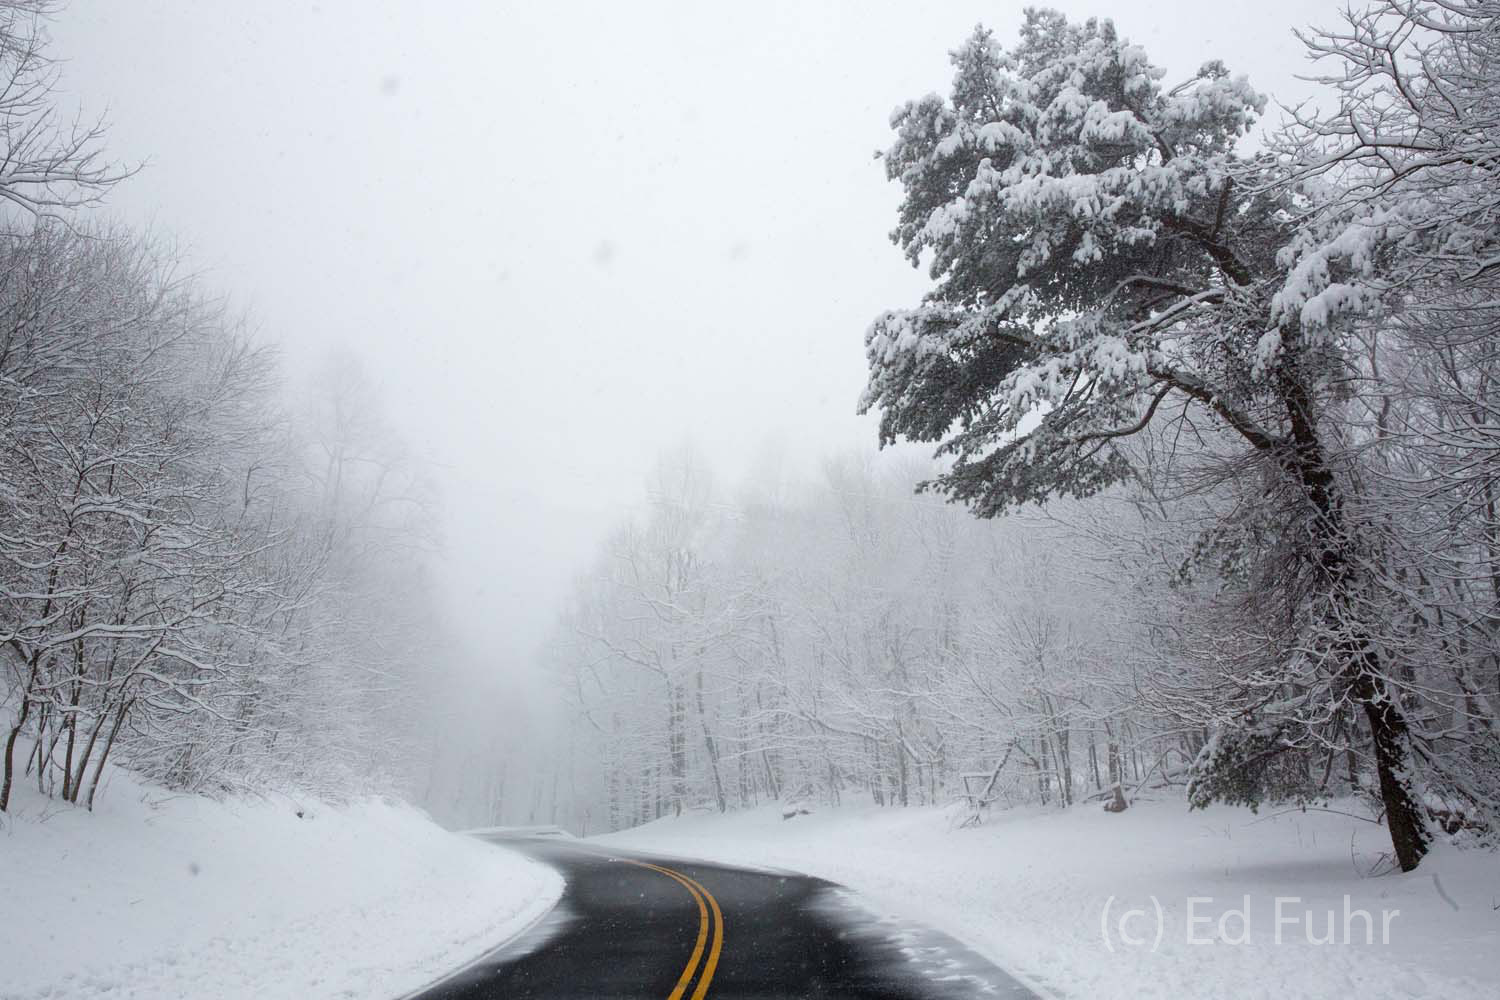 Shenandoah, Shenandoah National Park, photo, photography, images, mountains, wilderness, Virginia, Skyline Drive, road, winter, snow, photo